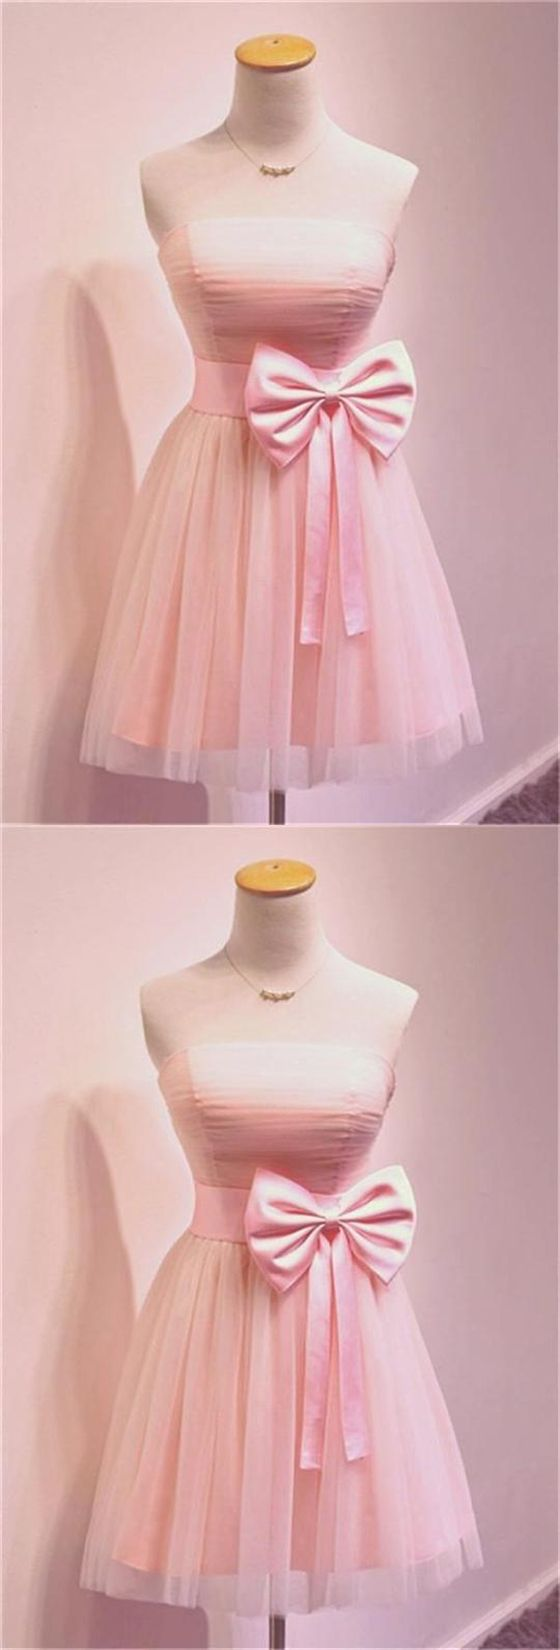 Pink A Line Strapless Tulle Homecoming Dresses Cocktail Dresses With Bow